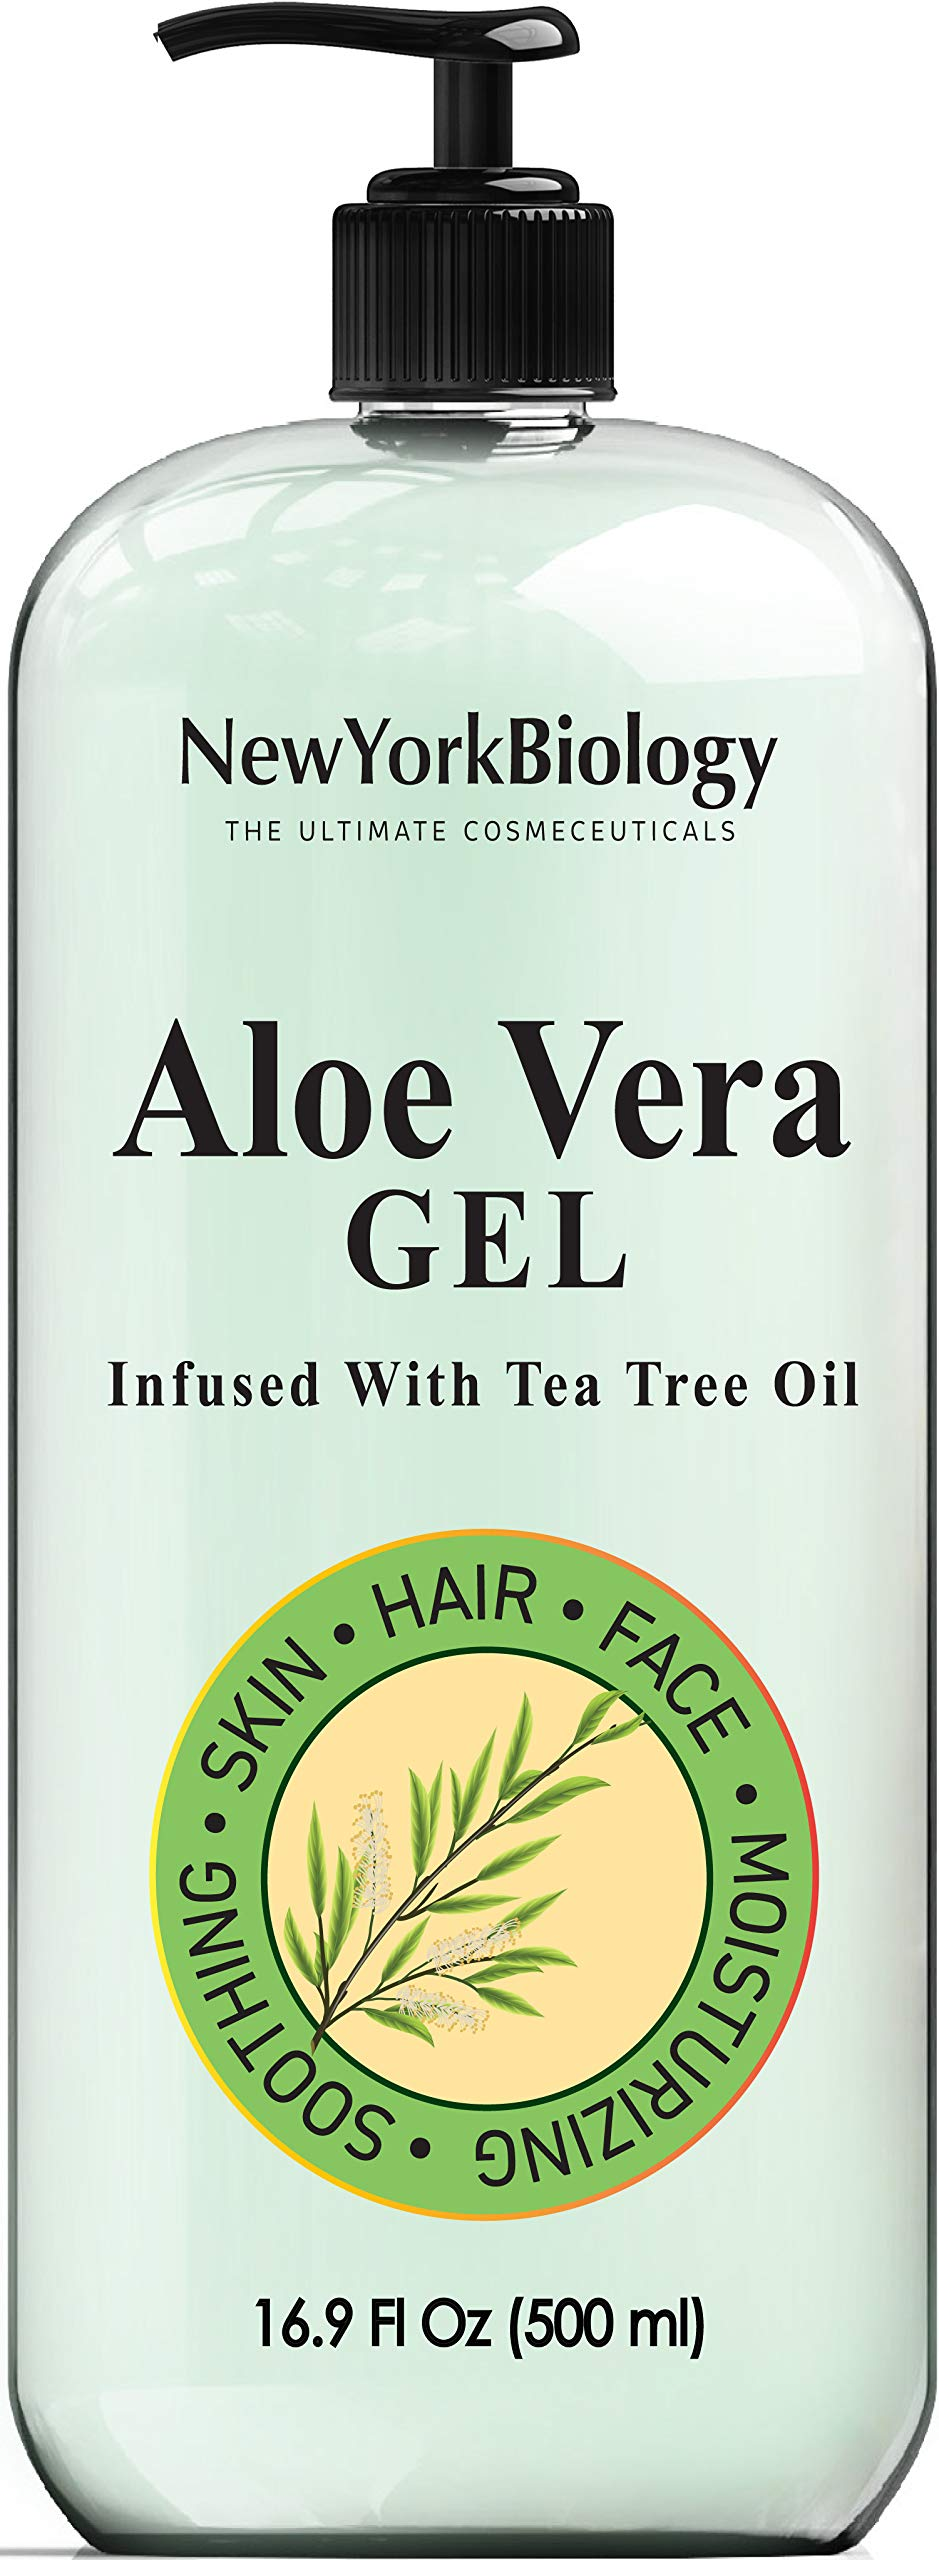 New York Biology Aloe Vera Gel for Skin Face and Hair - Infused with Tea Tree Oil – From Fresh Aloe Vera Plant – Antifungal Gel Helps Remove, Clean Germs, Bacteria from Skin, Hands, Face - HUGE 16 oz